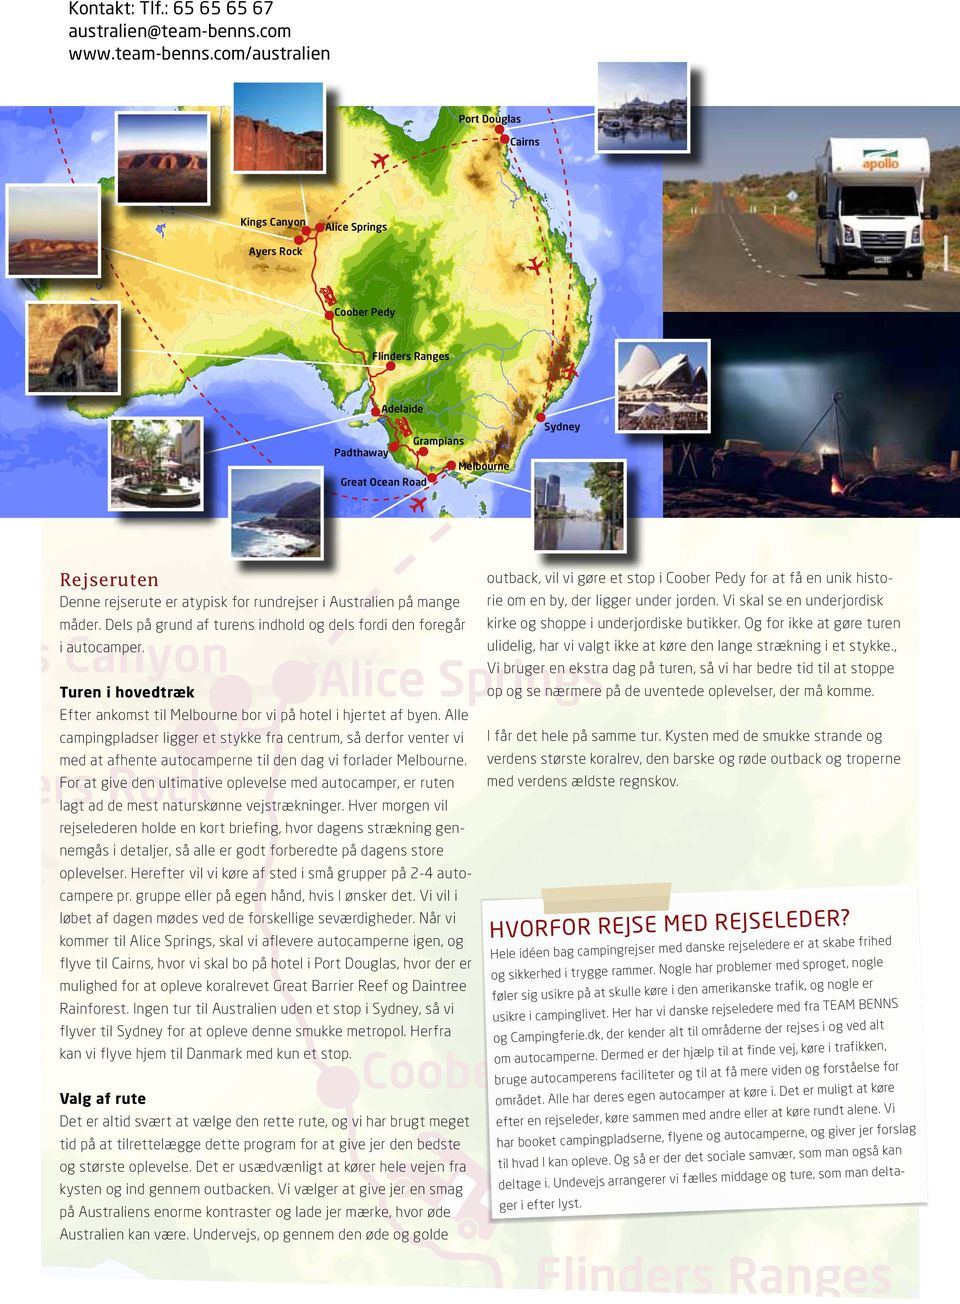 com/australien Port Douglas Cairns P Kings Canyon Alice Springs Ayers Rock Coober Pedy Flinders Ranges Adelaide Sydney Padthaway Grampians Melbourne Great Ocean Road Rejseruten outback, vil vi gøre